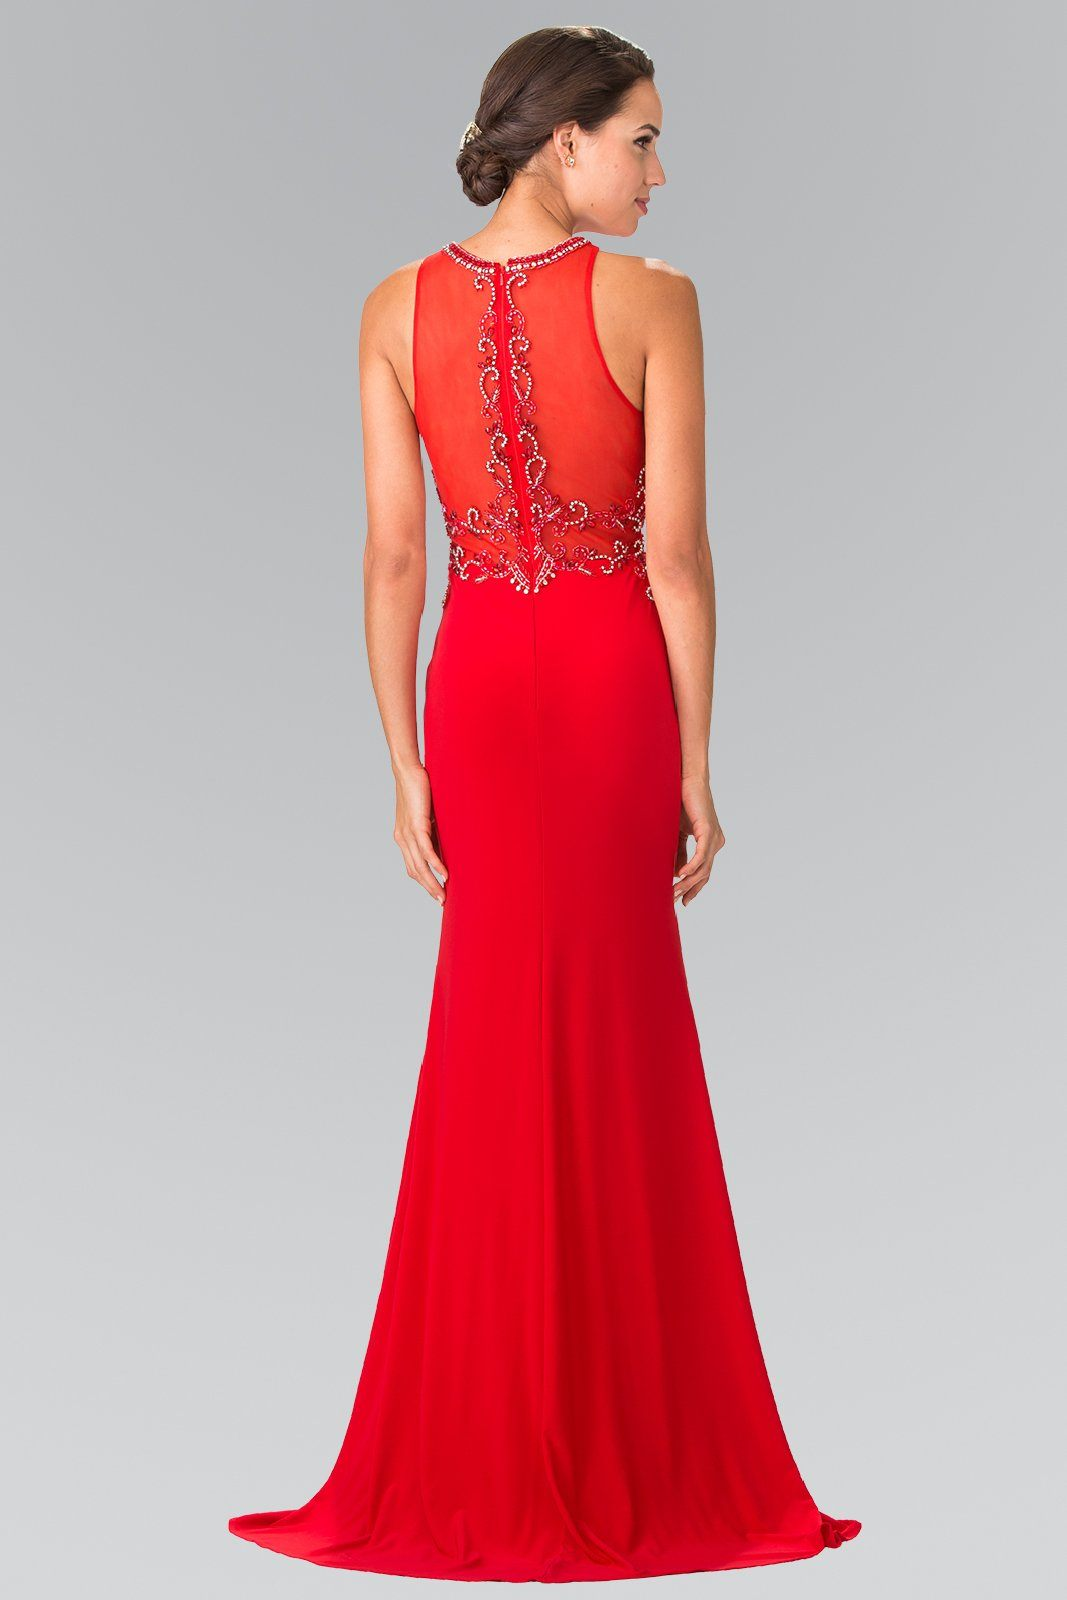 6ed6920a655 ... Long red formal dress gls 2298-Simply Fab Dress ...